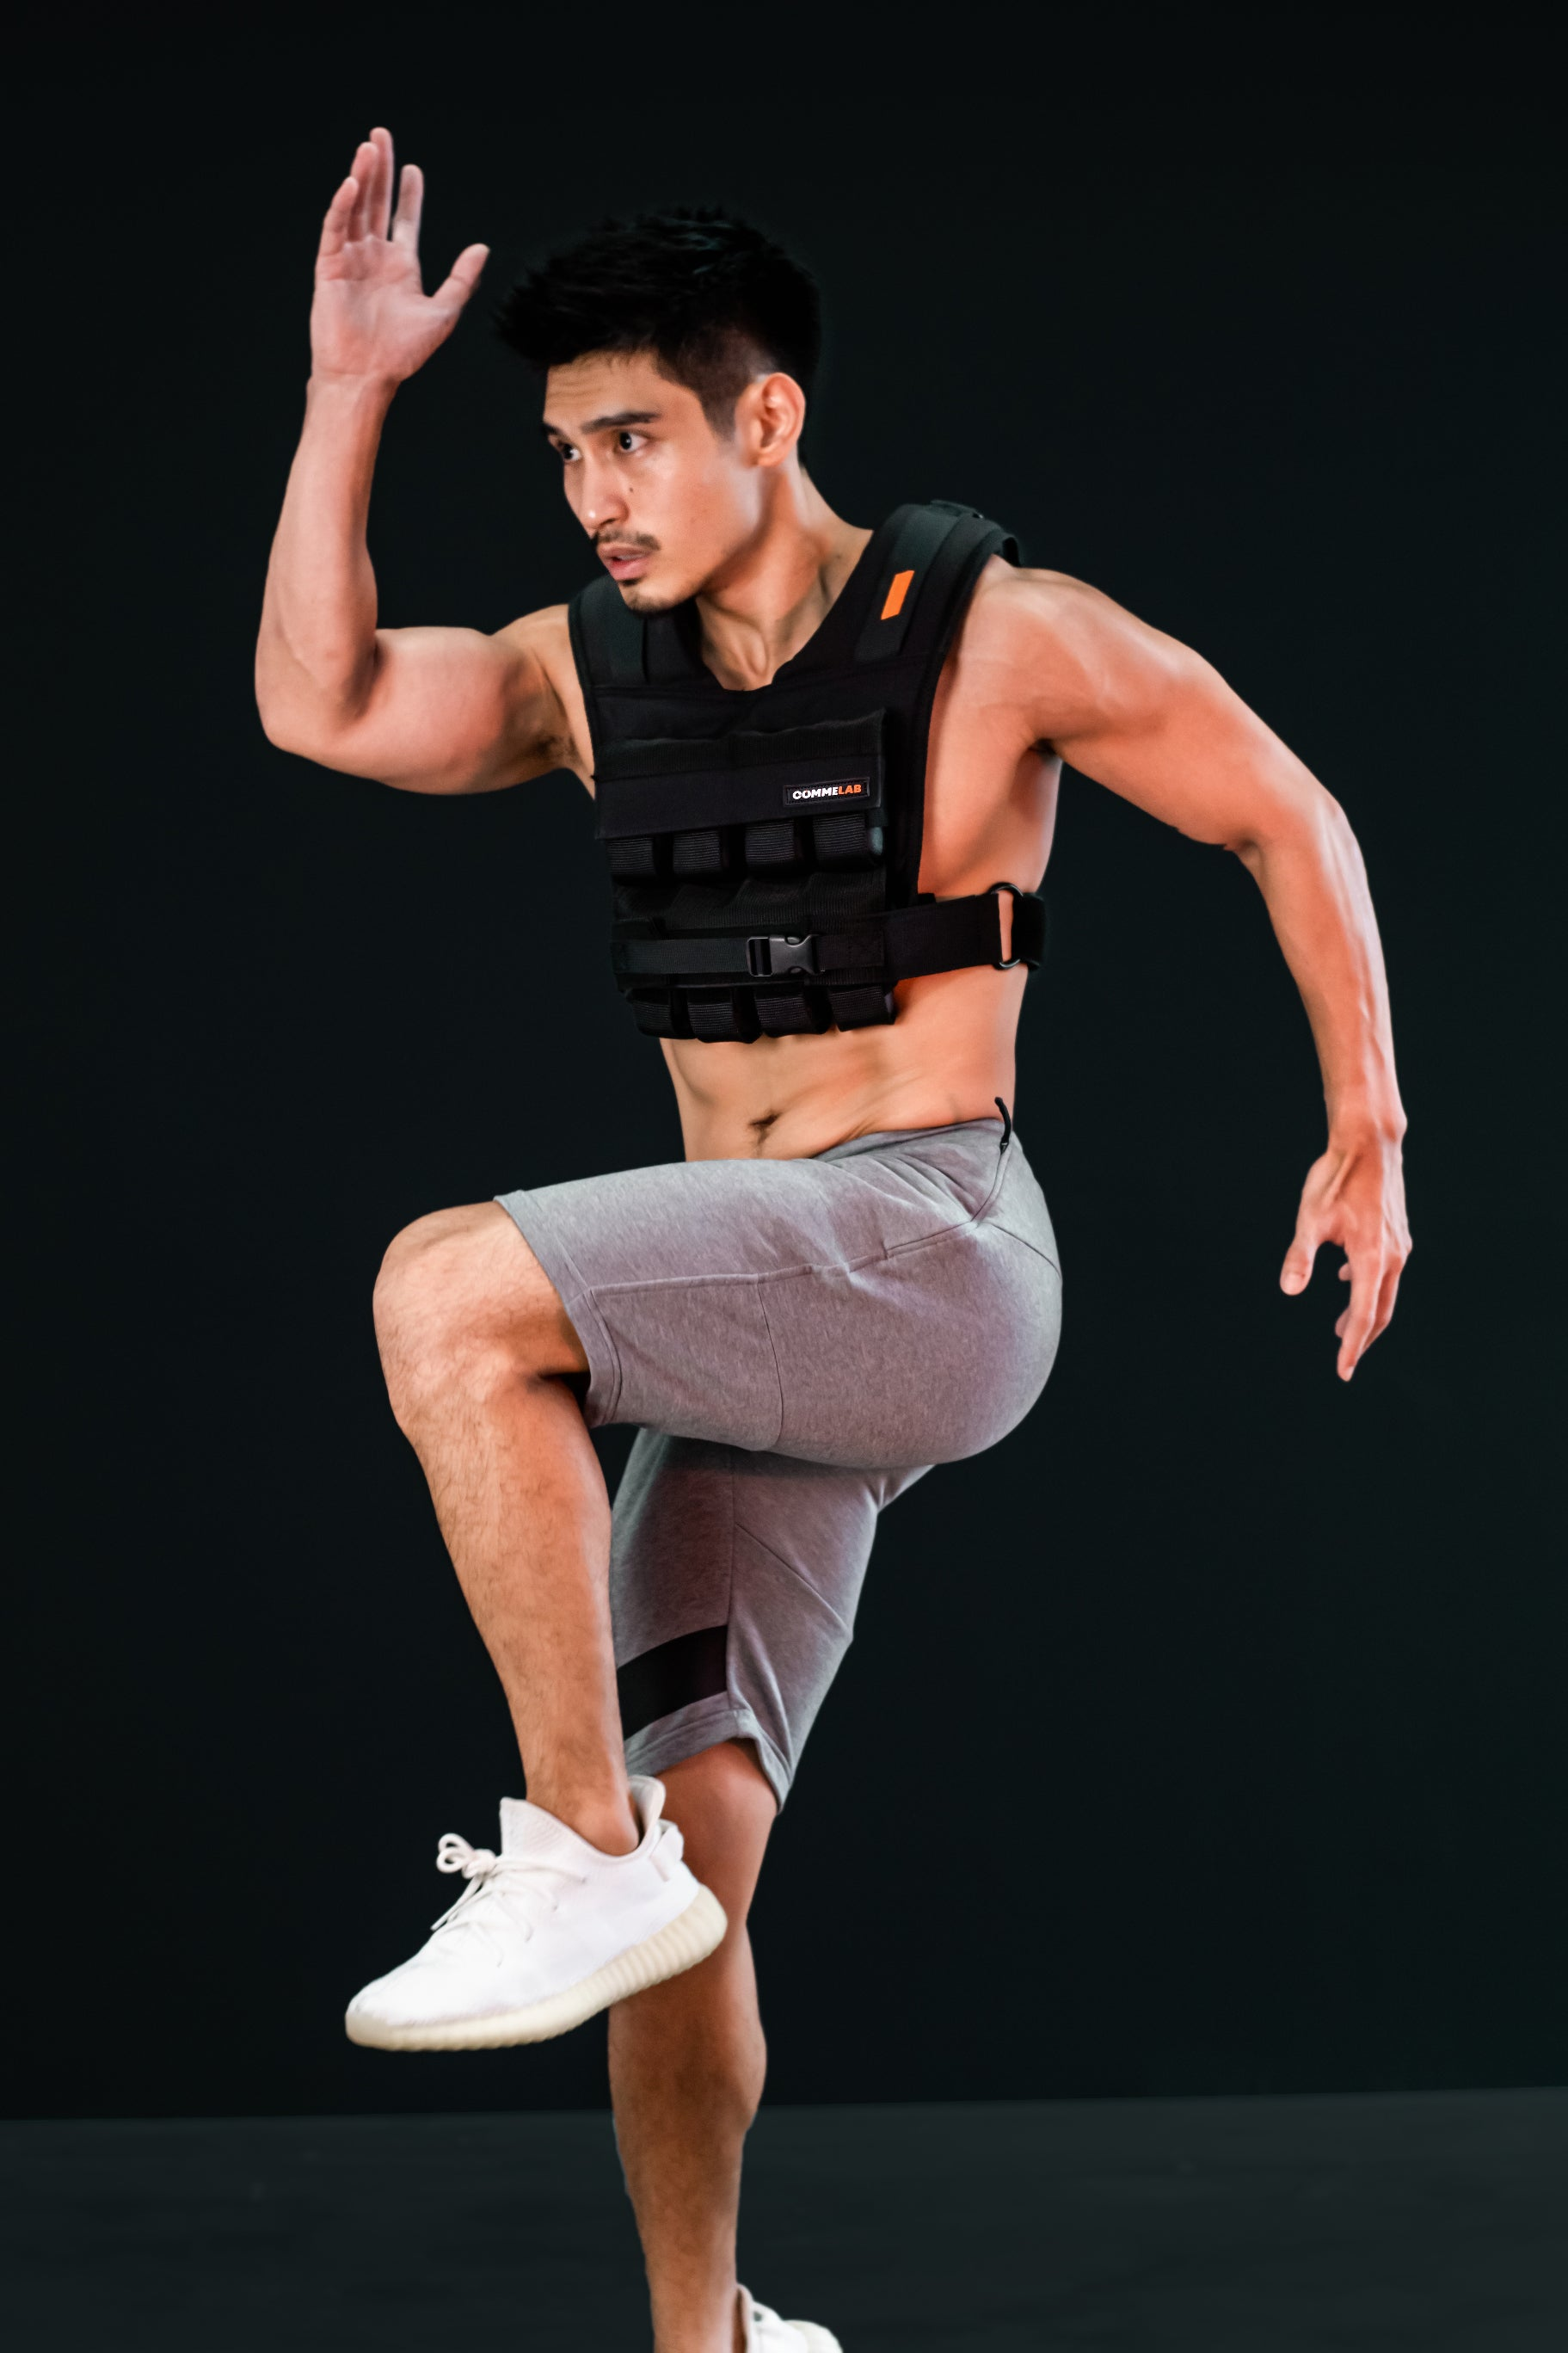 Comme Vest - Weight Vests by Commelab Singapore